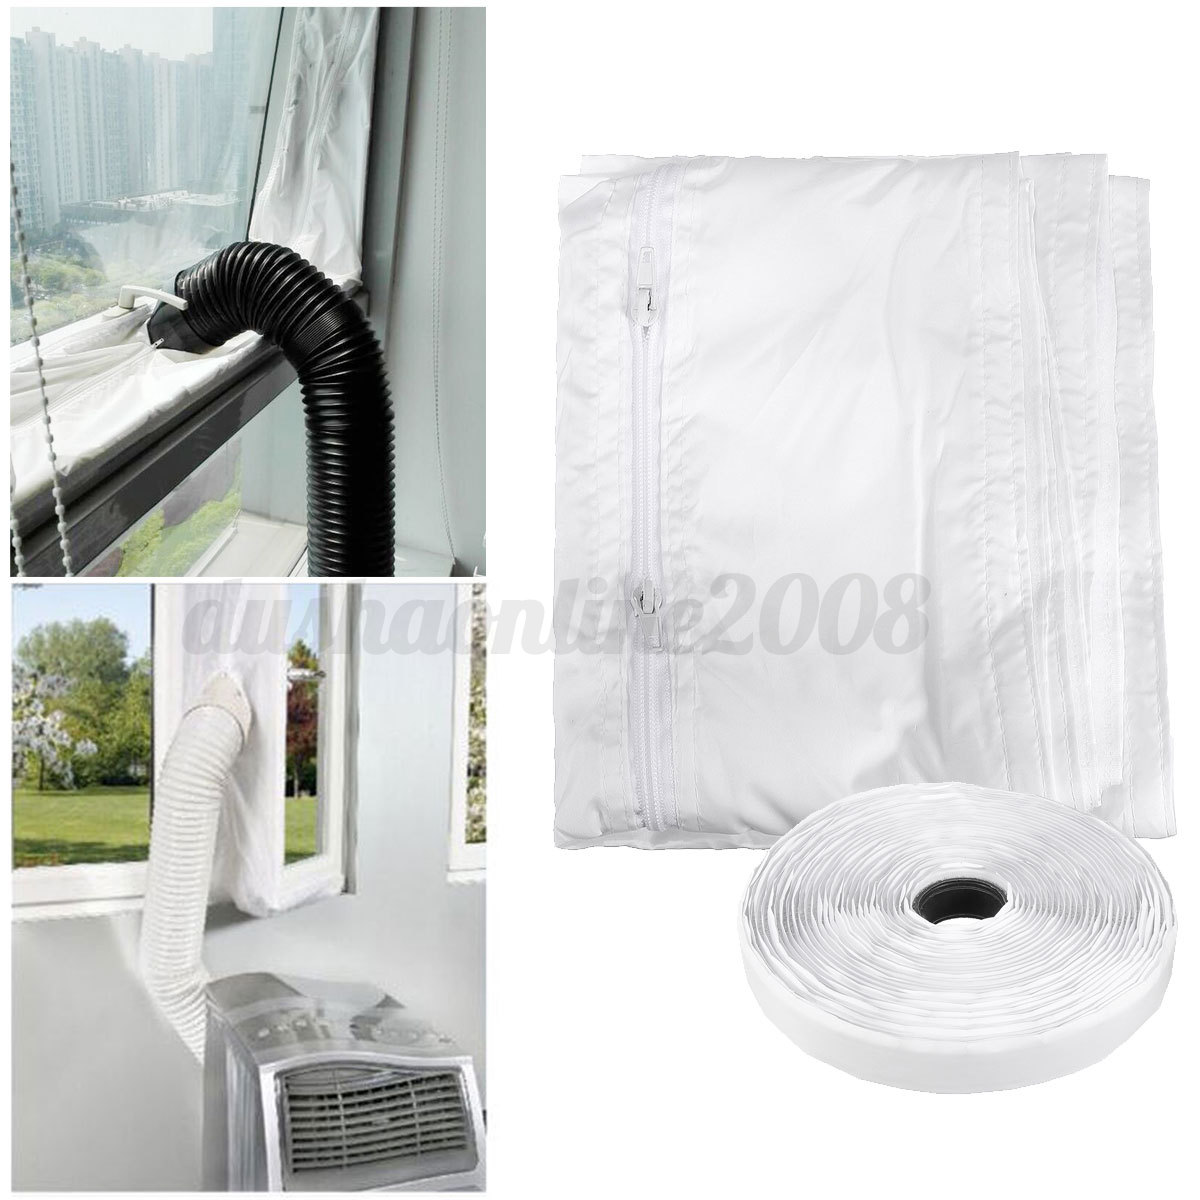 kit 4m voile isolant airlock calfeutrage pour climatiseur porte fen tre monobloc ebay. Black Bedroom Furniture Sets. Home Design Ideas